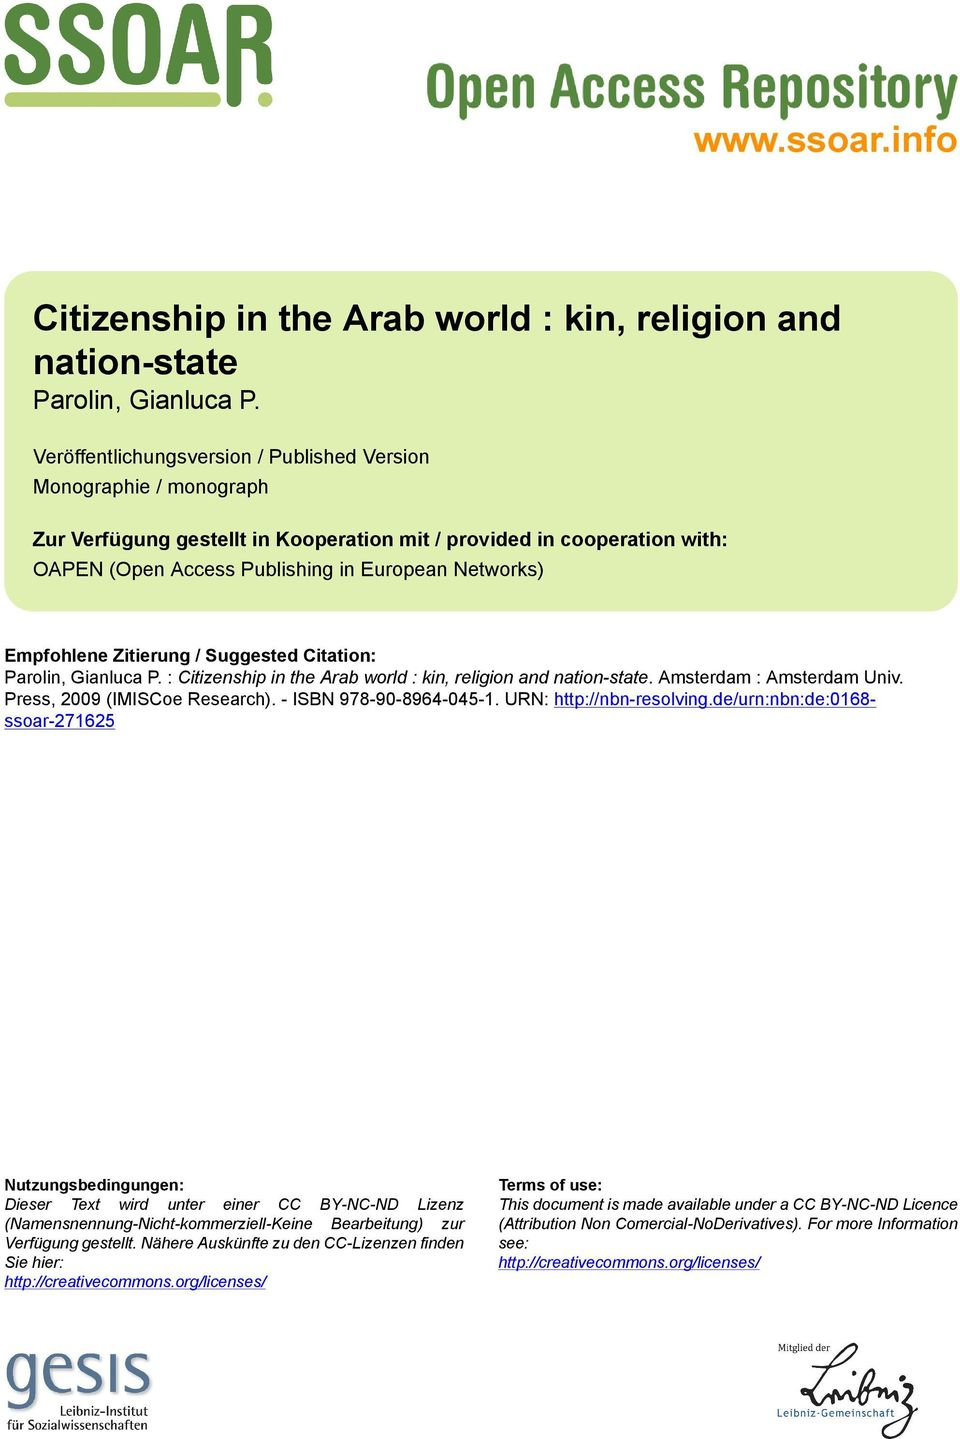 Empfohlene Zitierung / Suggested Citation: Parolin, Gianluca P. : Citizenship in the Arab world : kin, religion and nation-state. Amsterdam : Amsterdam Univ. Press, 2009 (IMISCoe Research).